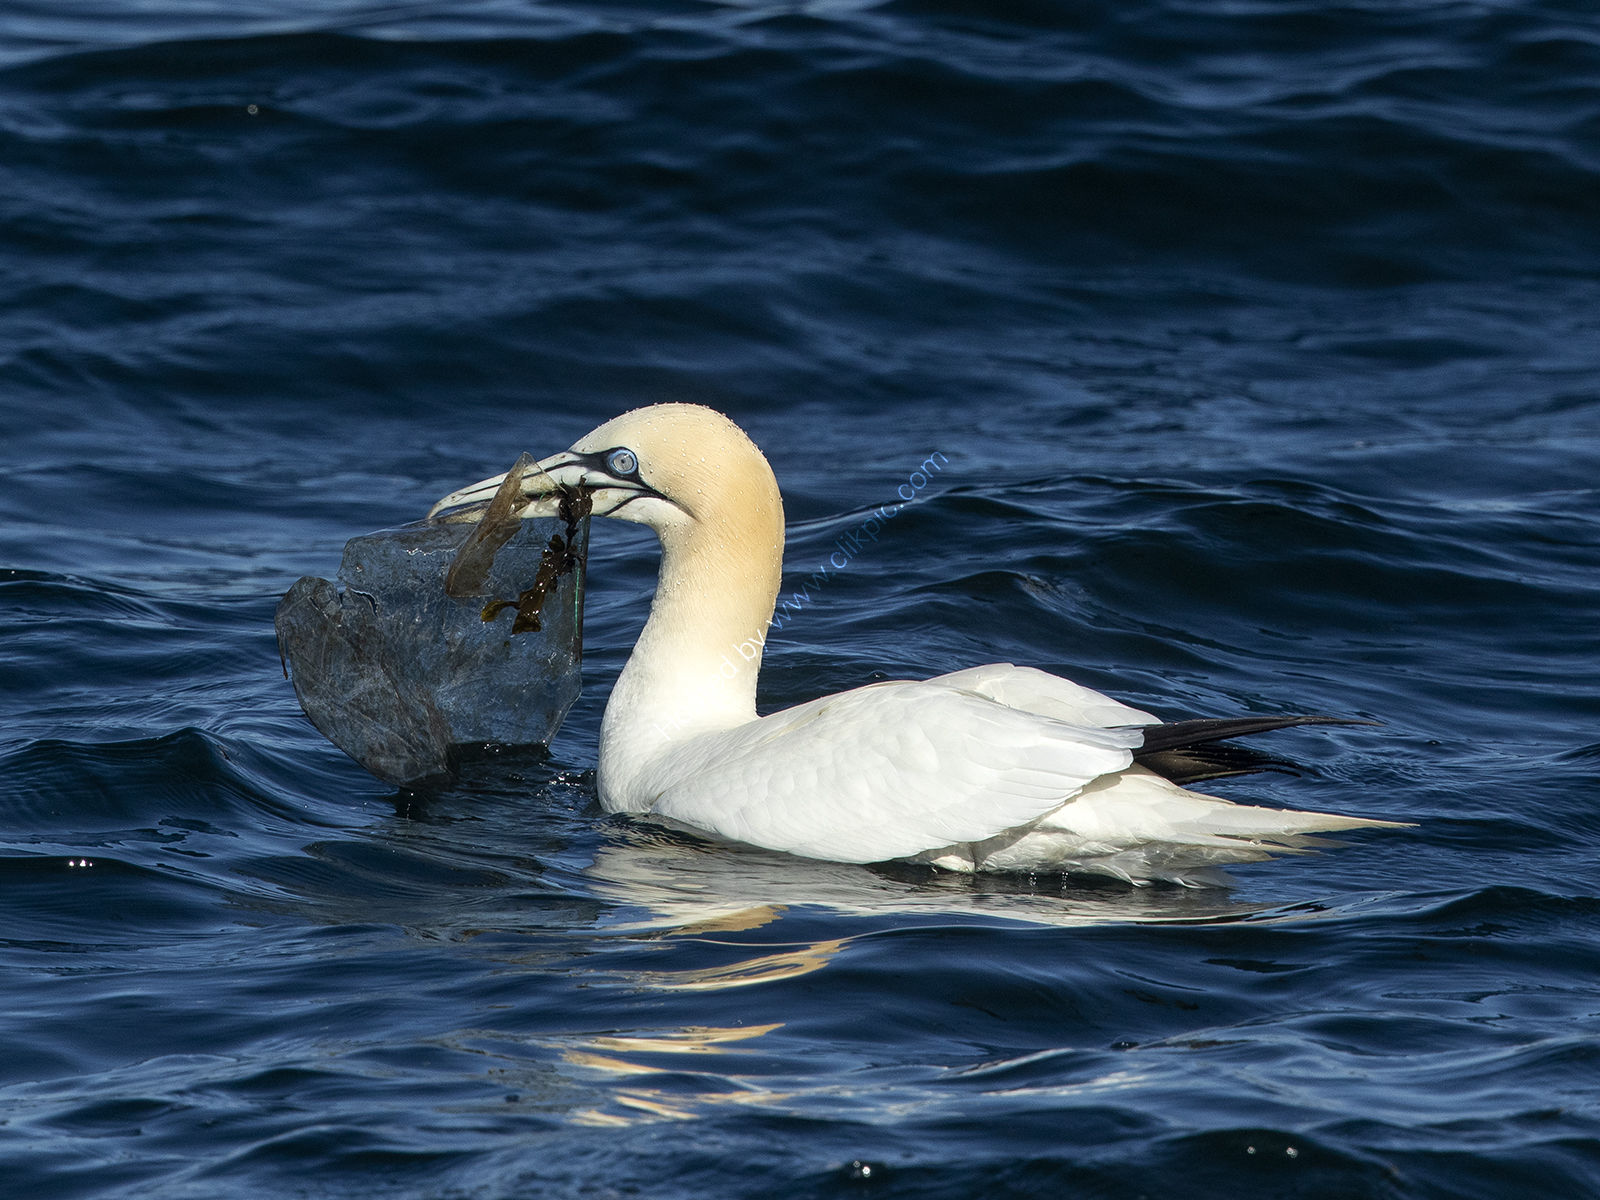 Gannet and Plastic